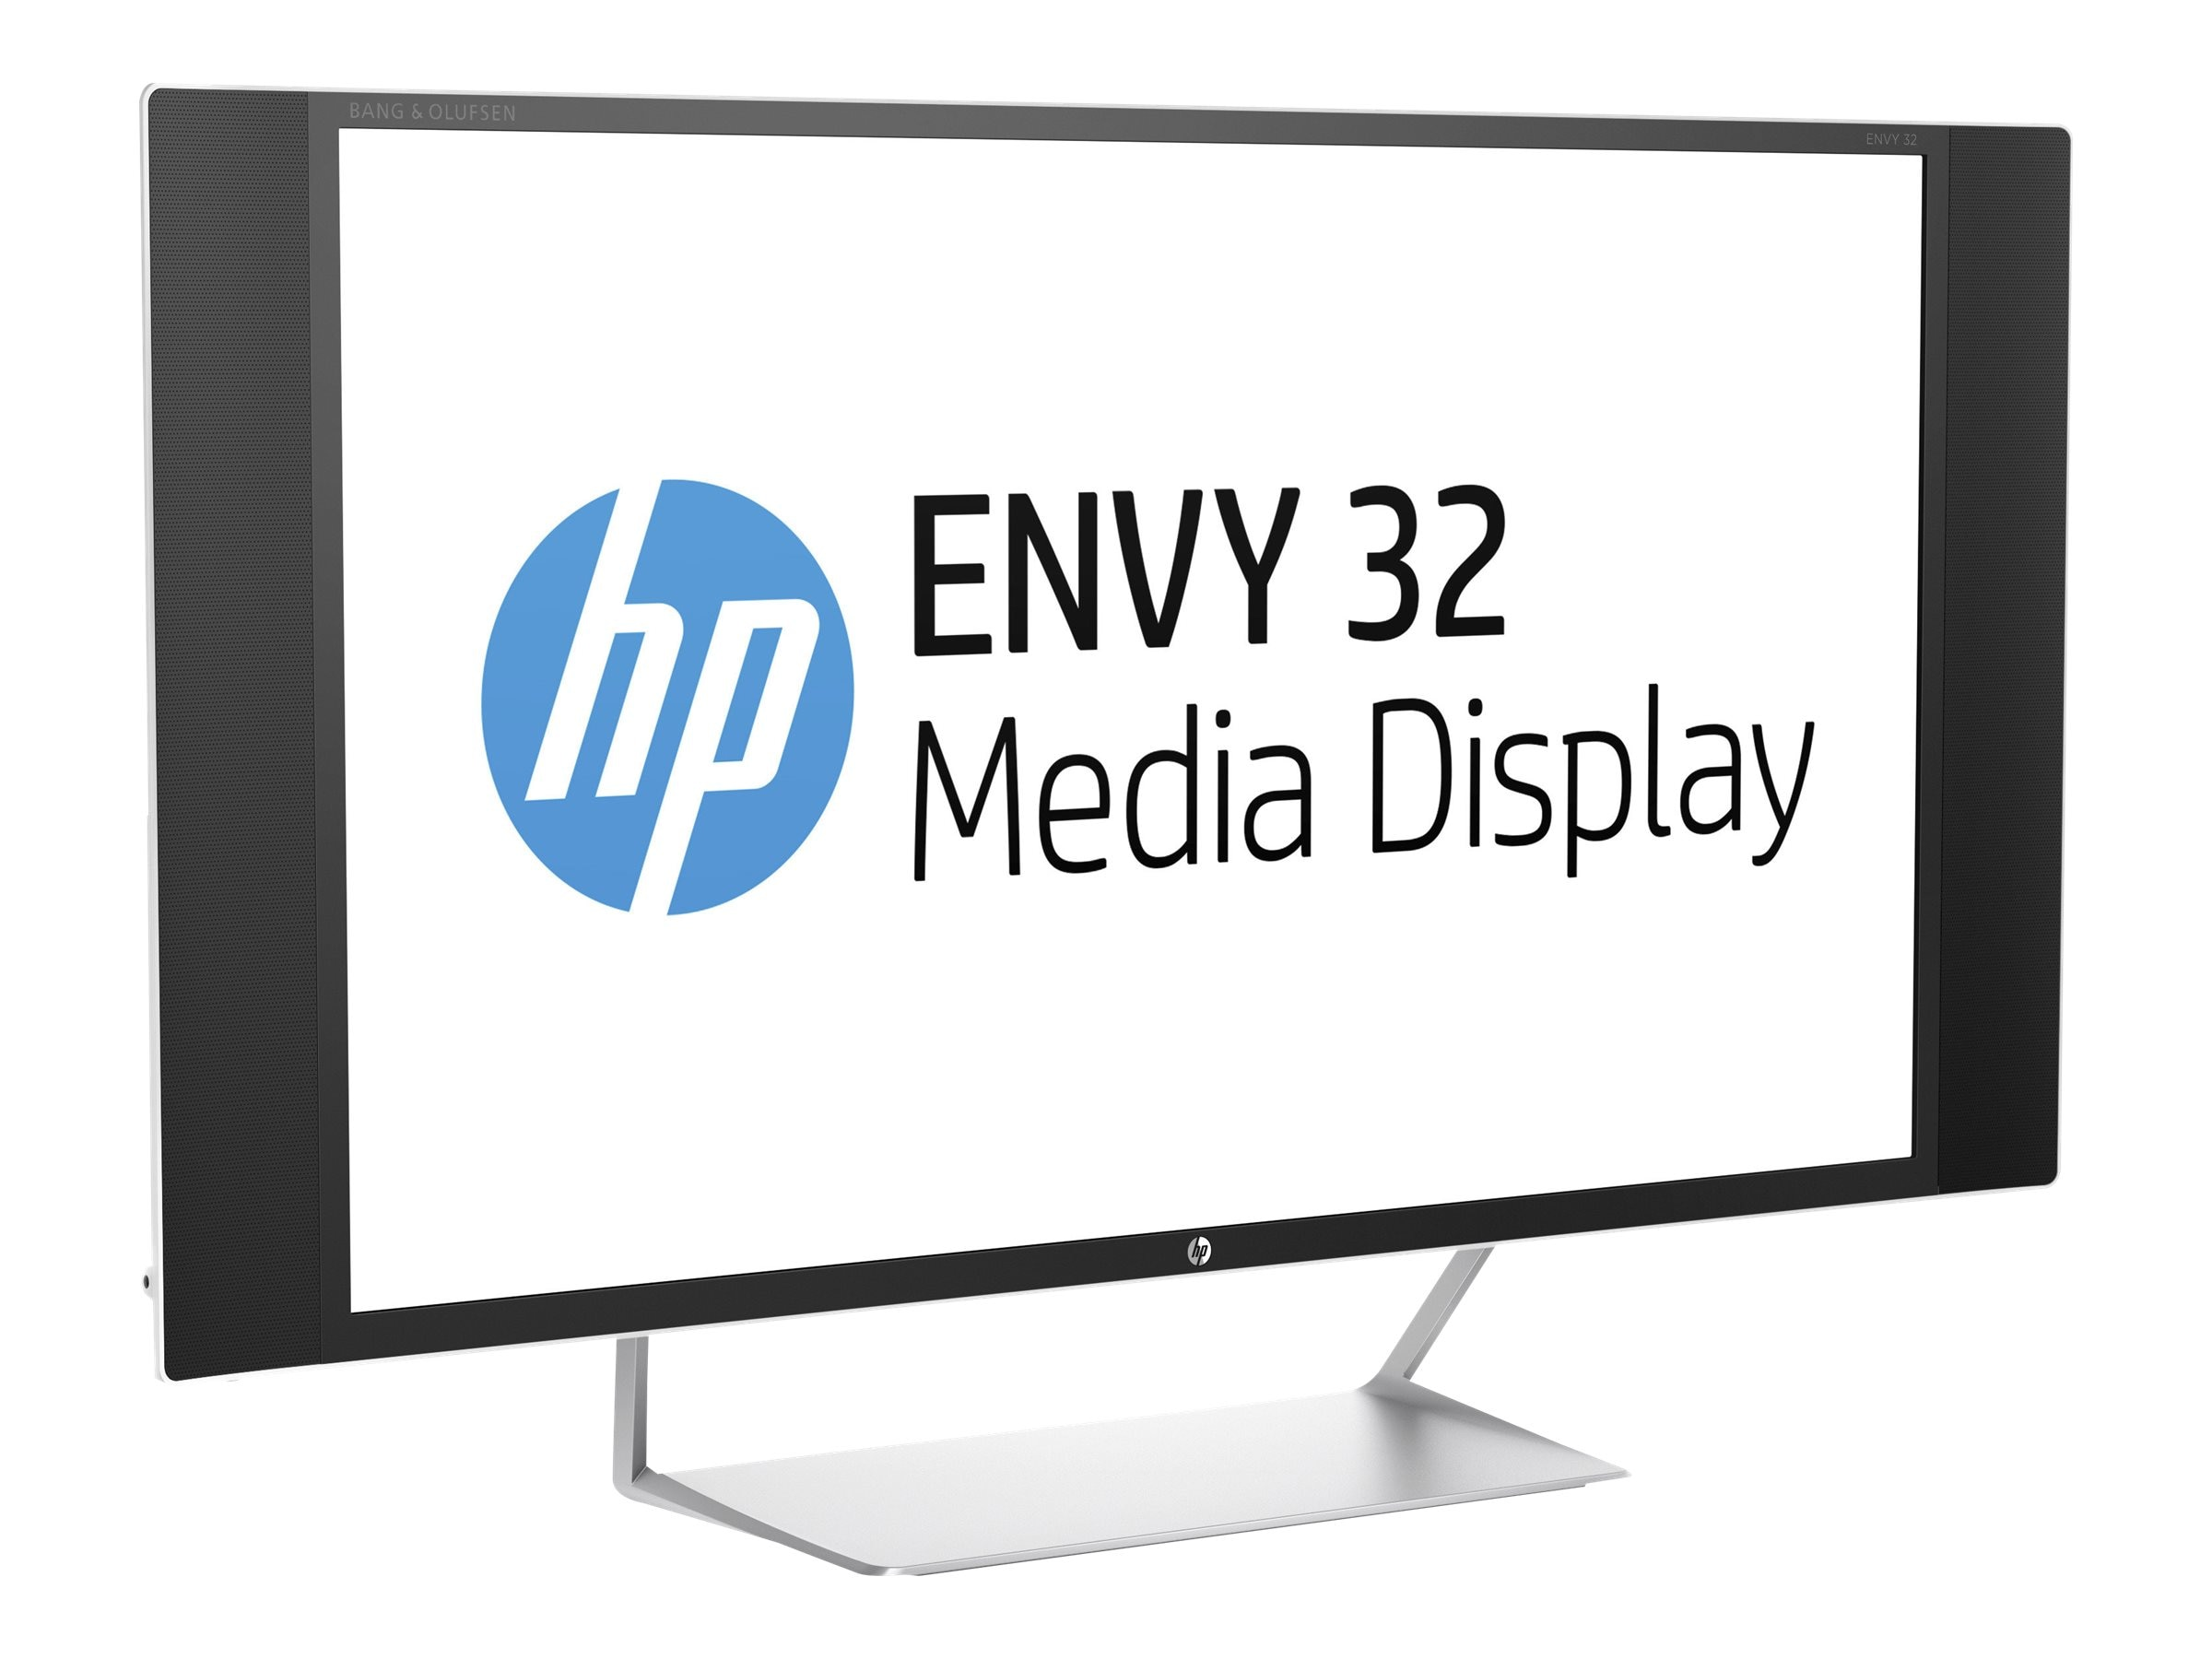 HP 32 Envy Quad HD LED-LCD Media Display with Bang and Olufsen, Black, N9C43AA#ABA